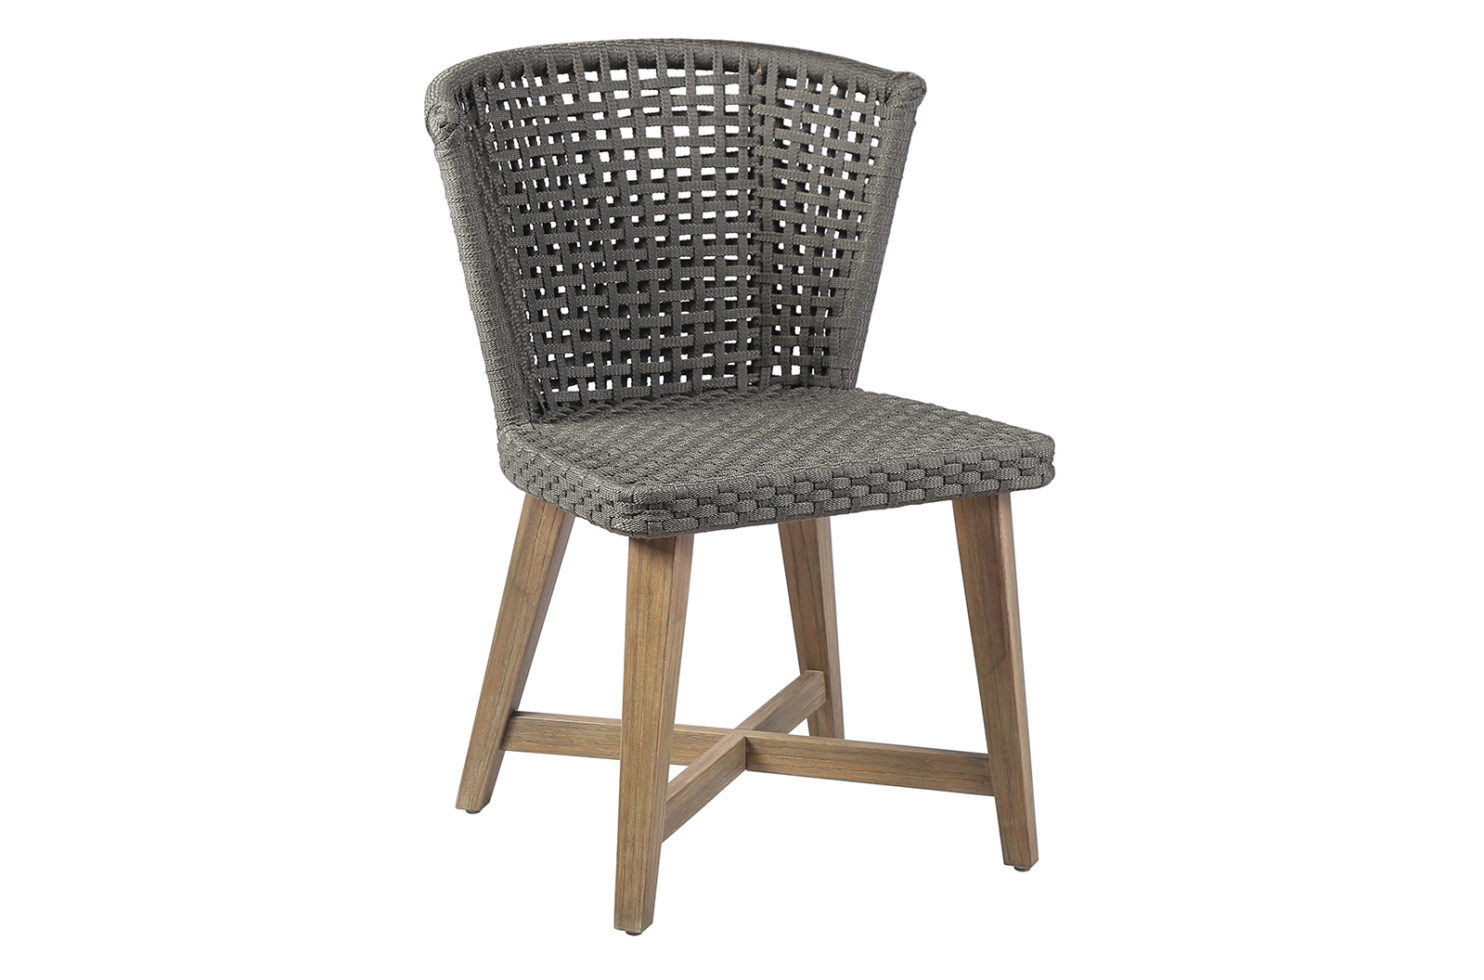 pioneer bistro chair 504FT402P2 E 1 3Q